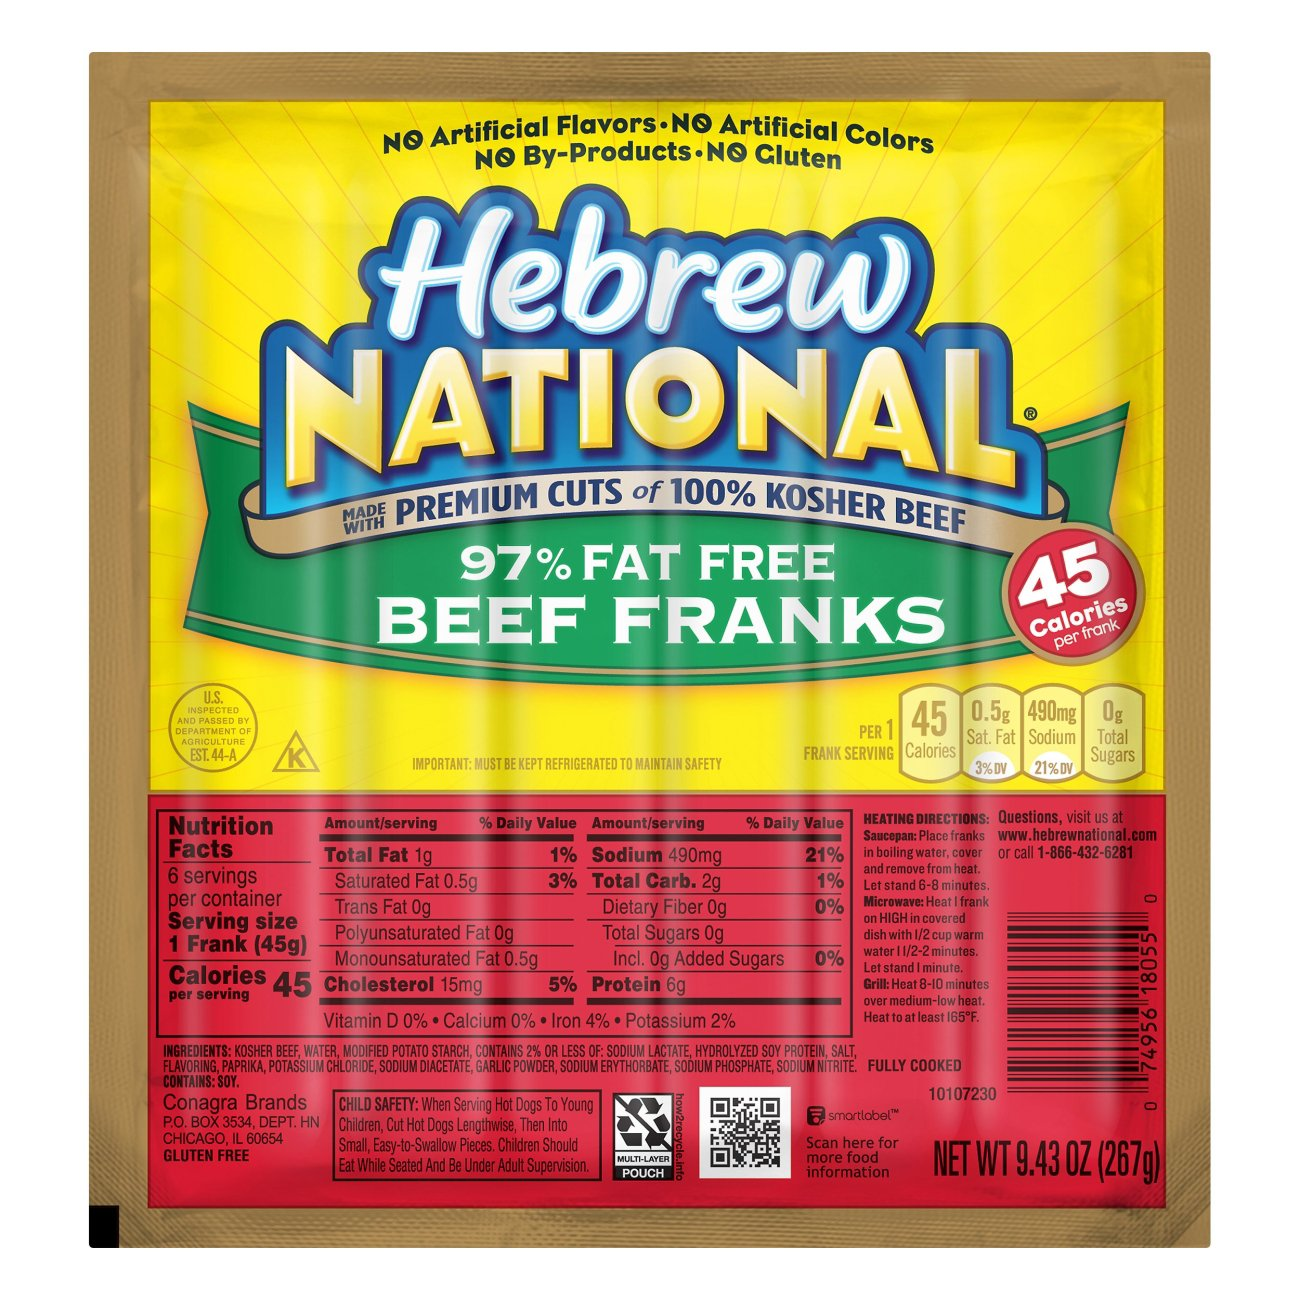 Hebrew National Beef Franks Fat Free Shop Hot Dogs at HEB